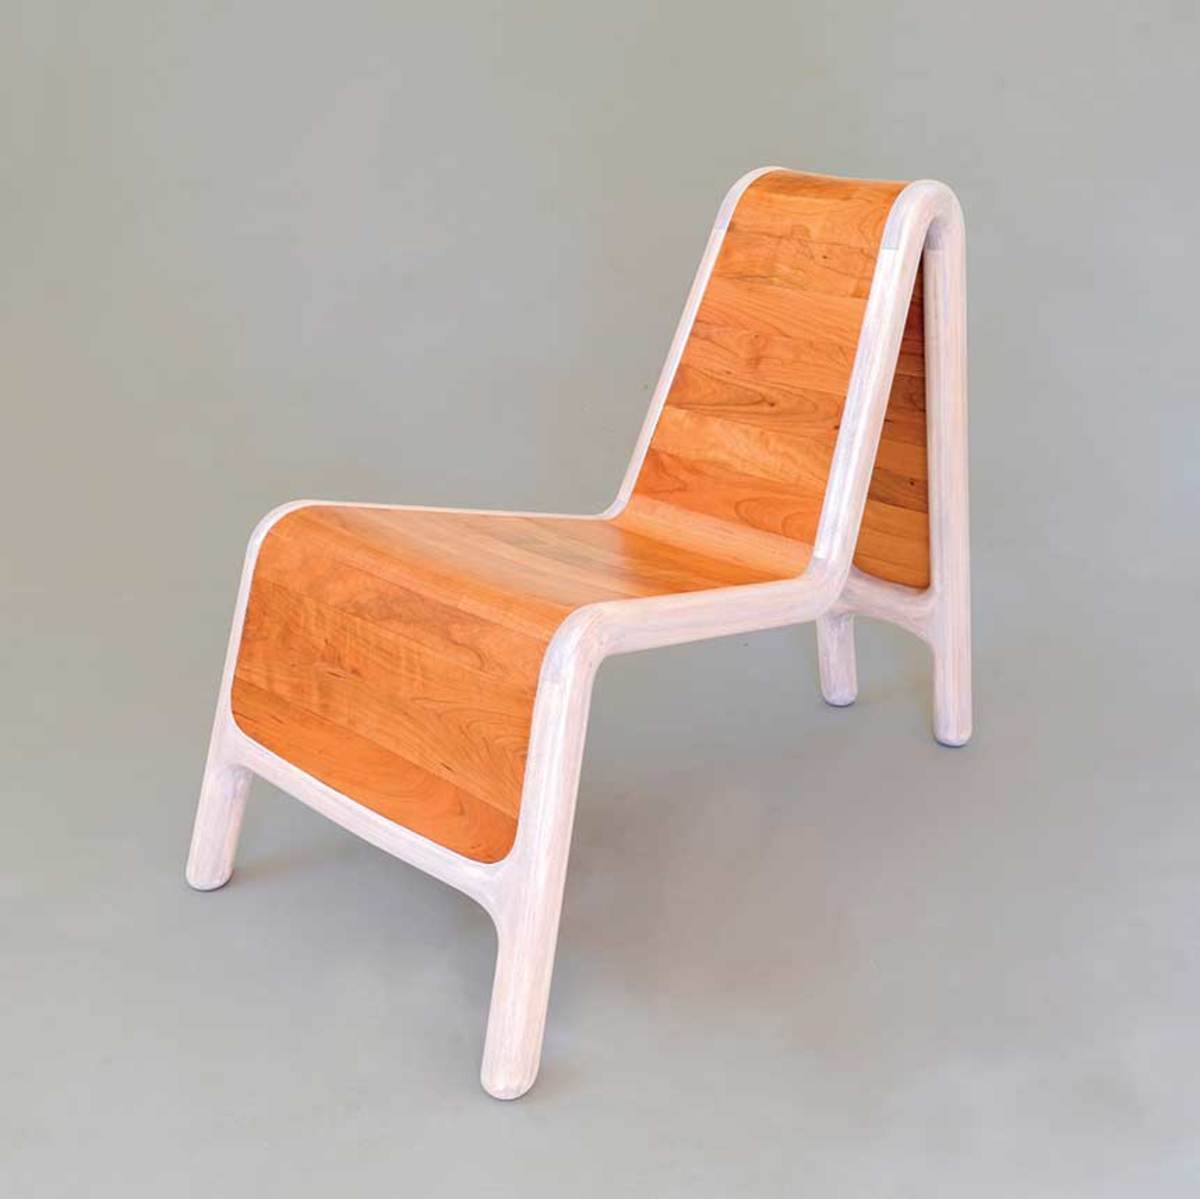 Lounge chair by Kevin Reiswig